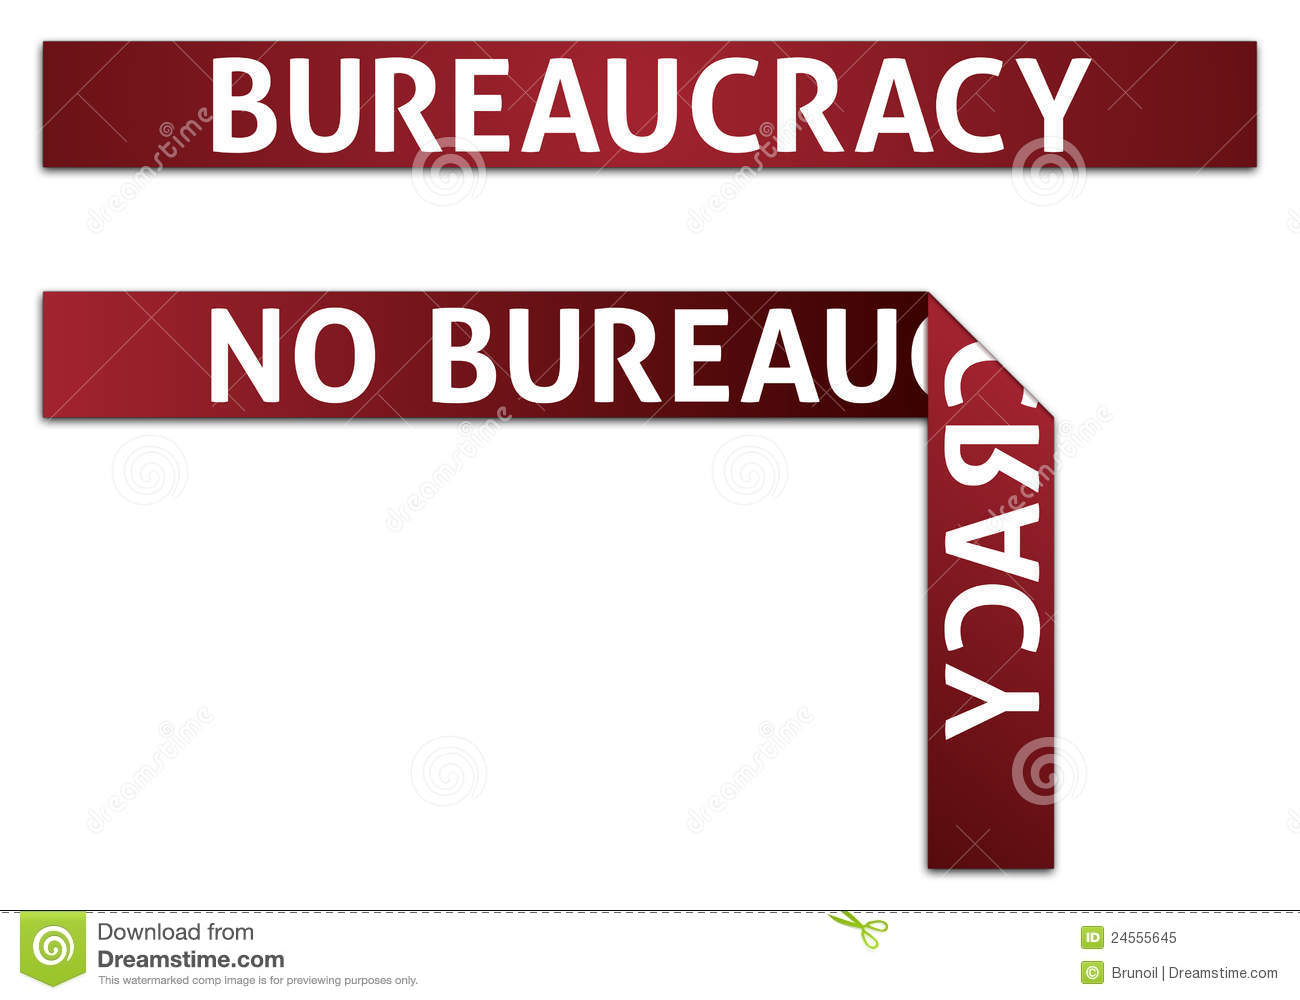 Bureaucracy and no bureaucracy red tape illustrations eps v 10